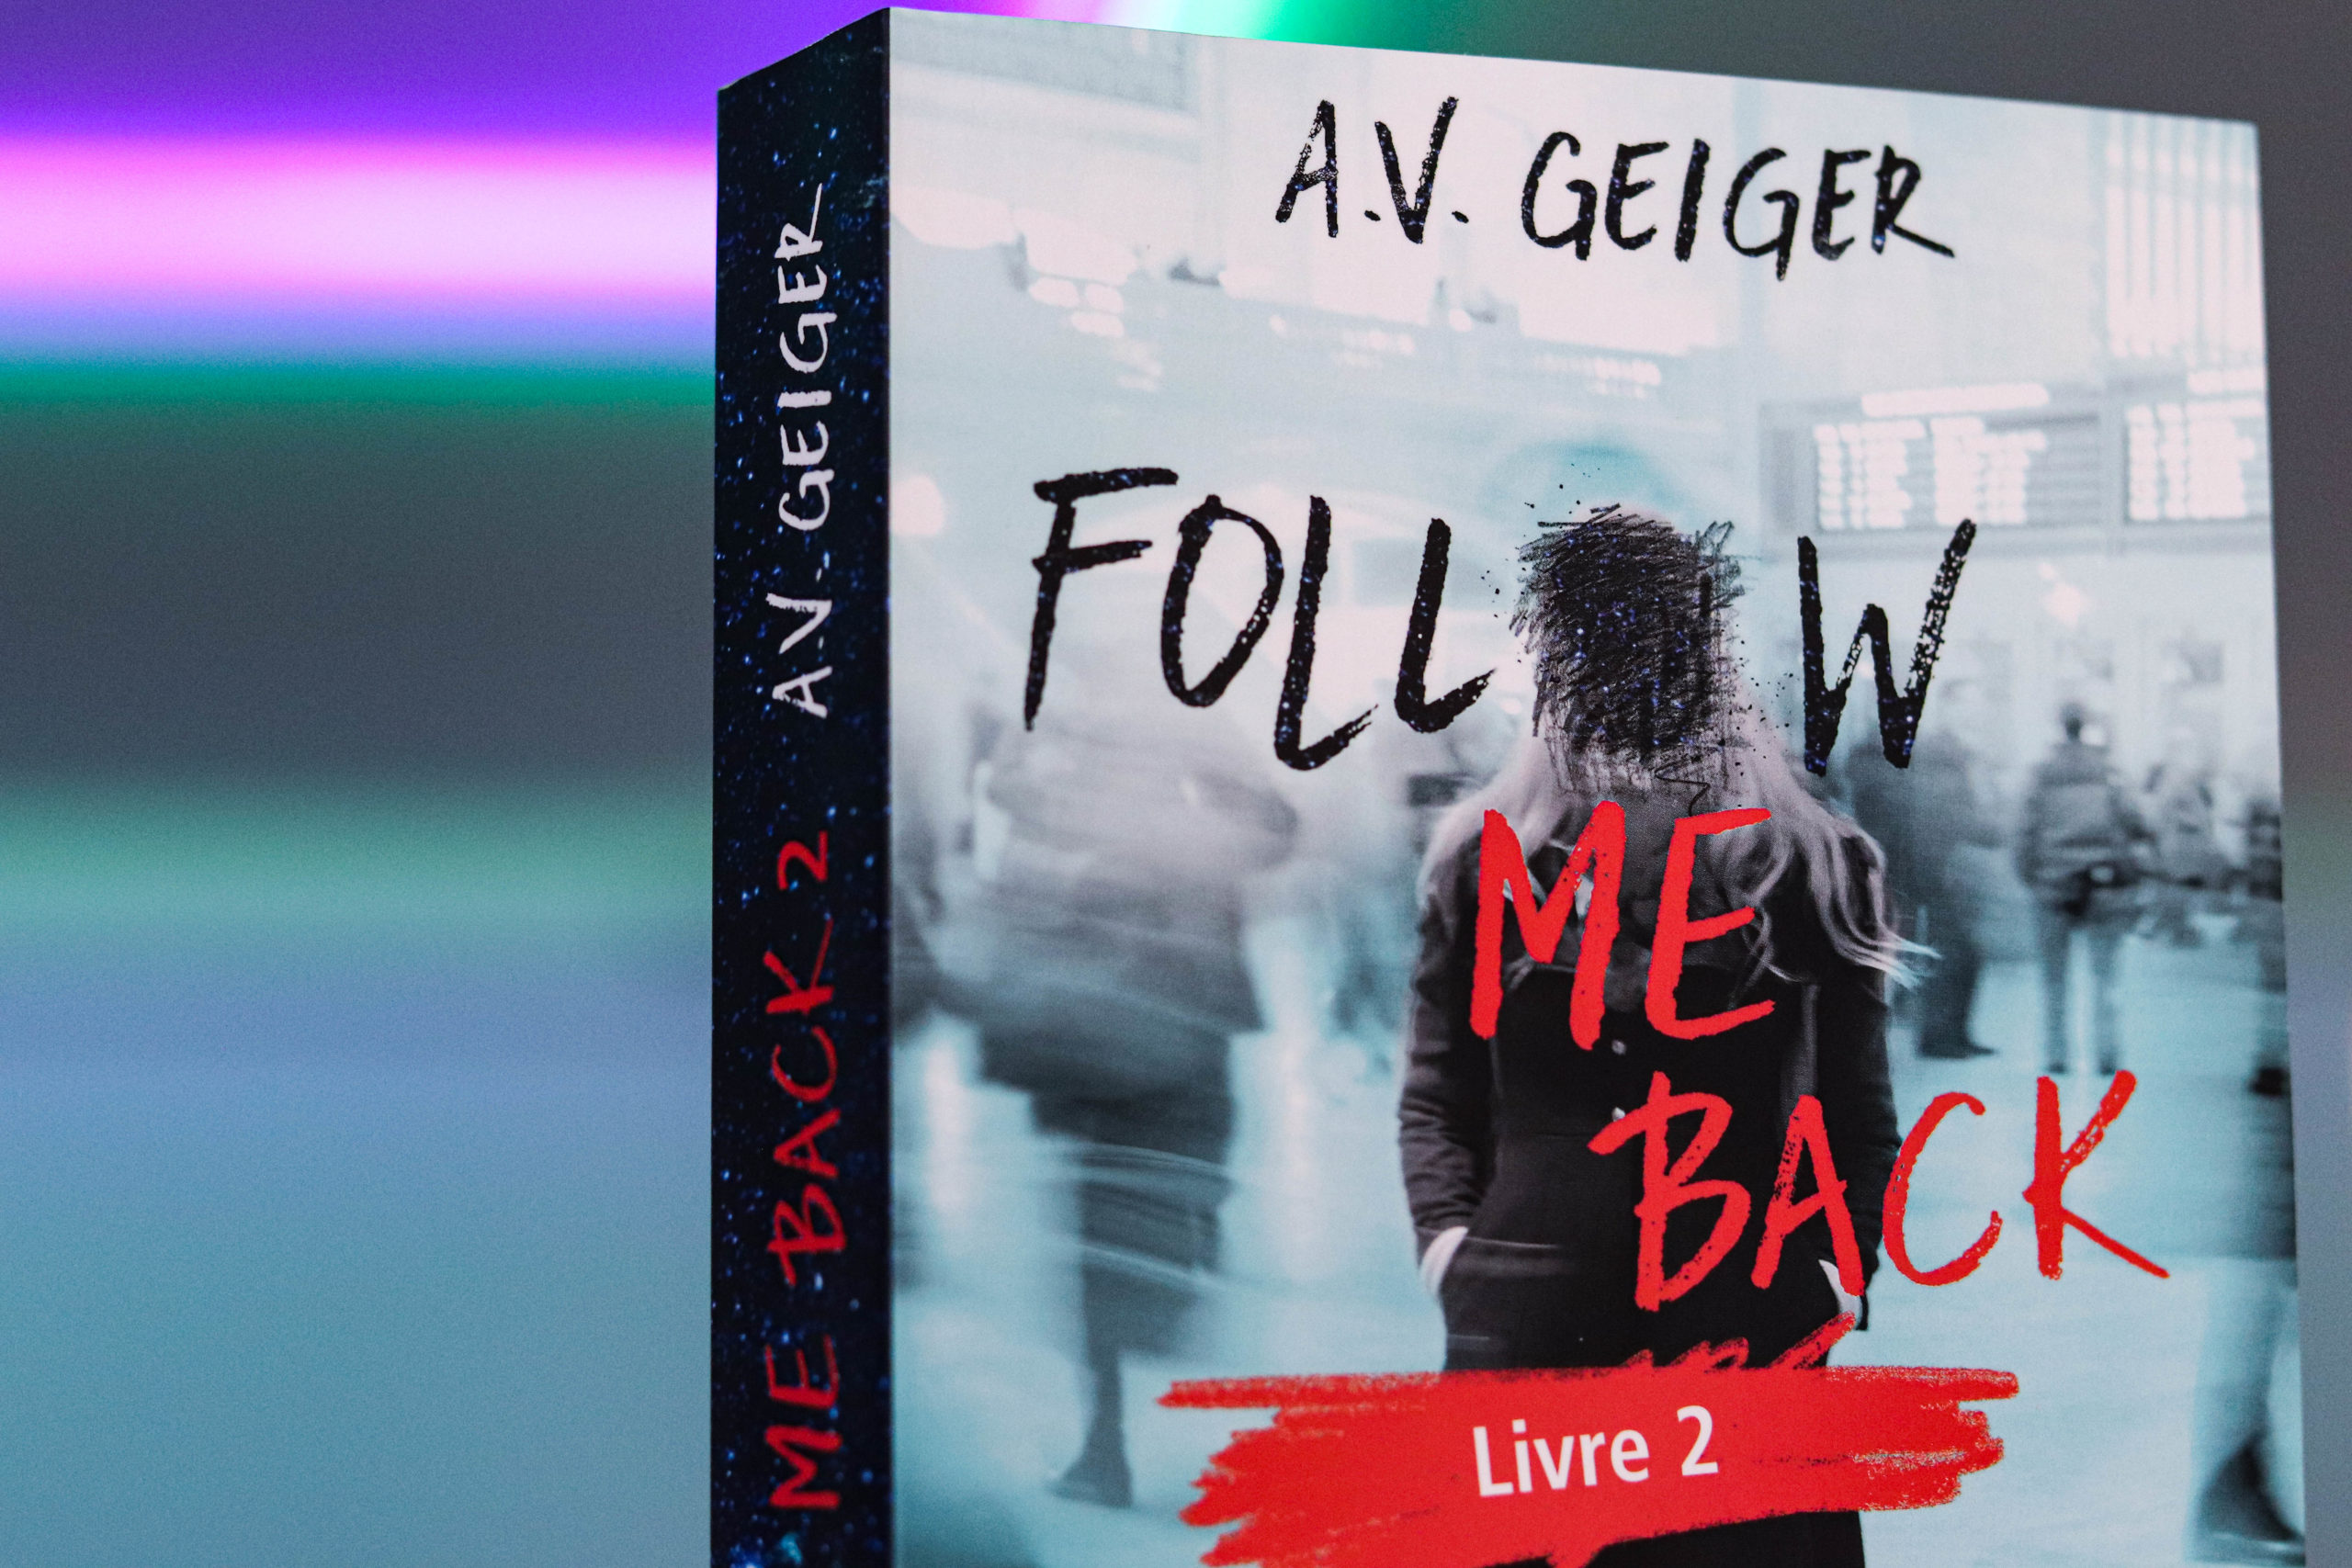 Follow me back #2 – A. V. Geiger